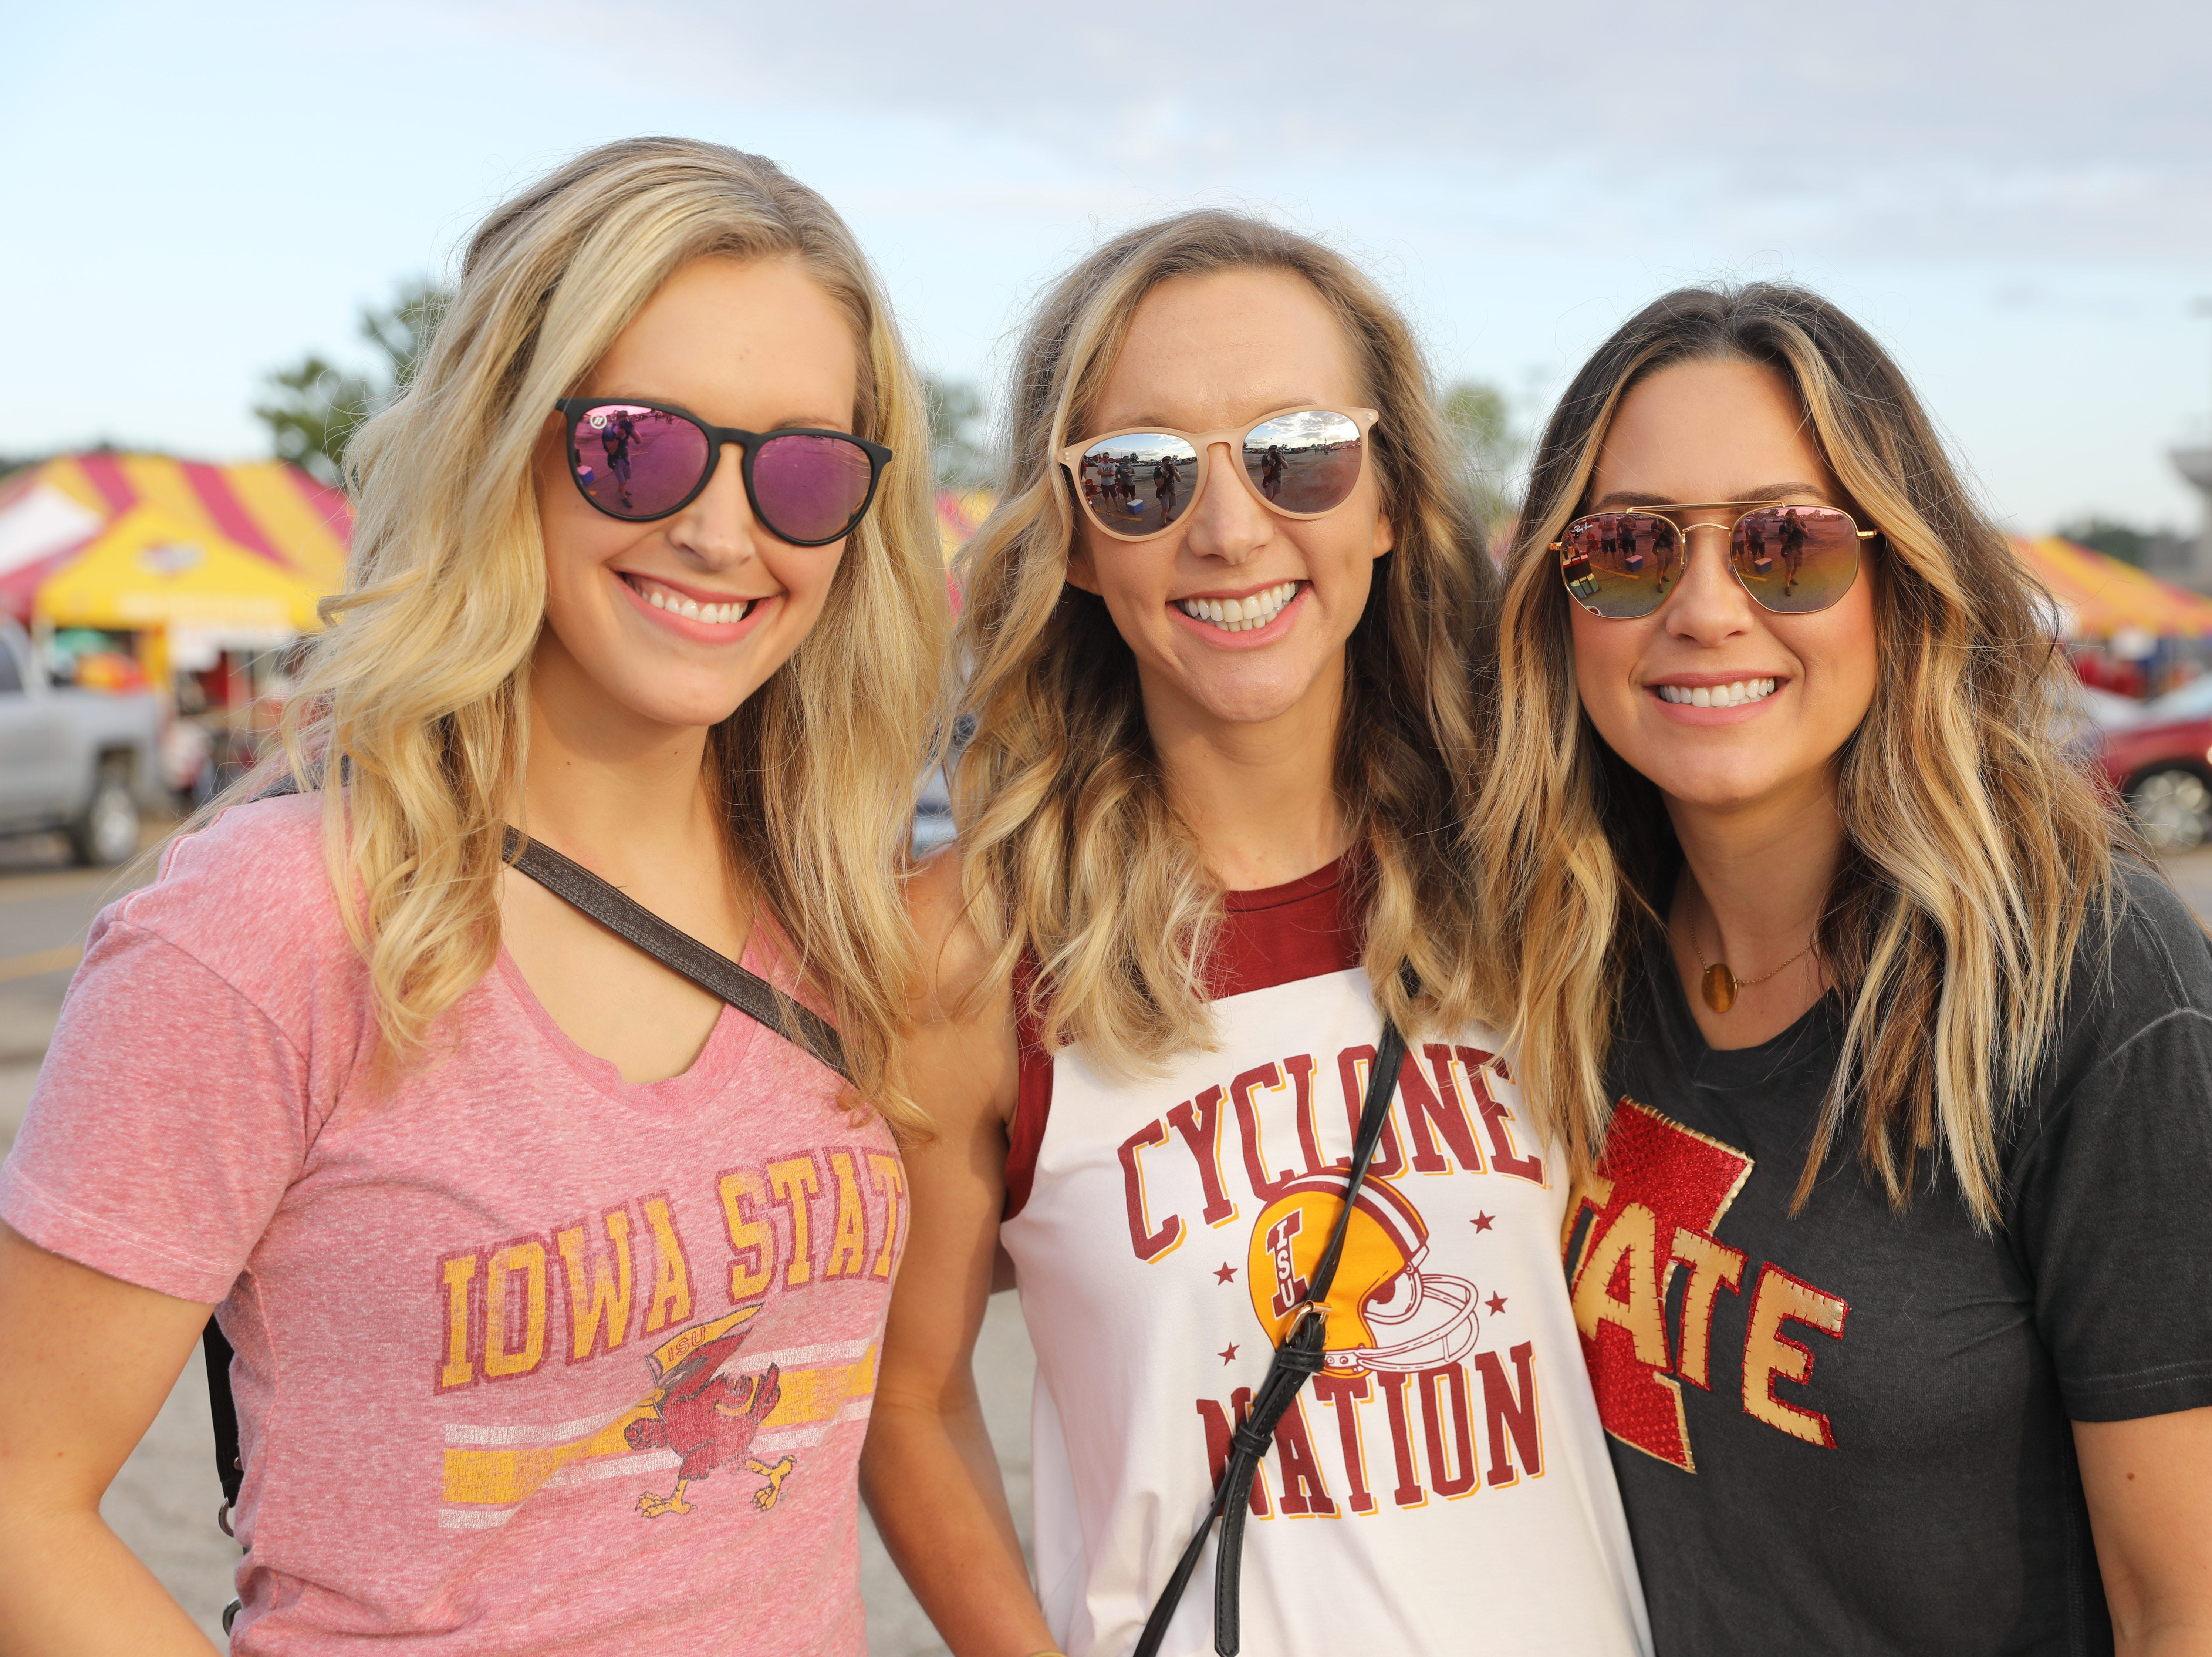 Melissa Wallace of Lake View (from left), Leah Warnemunde of Calamus and Andrea Miller of Osceola Saturday, Sept. 15, 2018, before the Iowa State football game against Oklahoma in Ames.